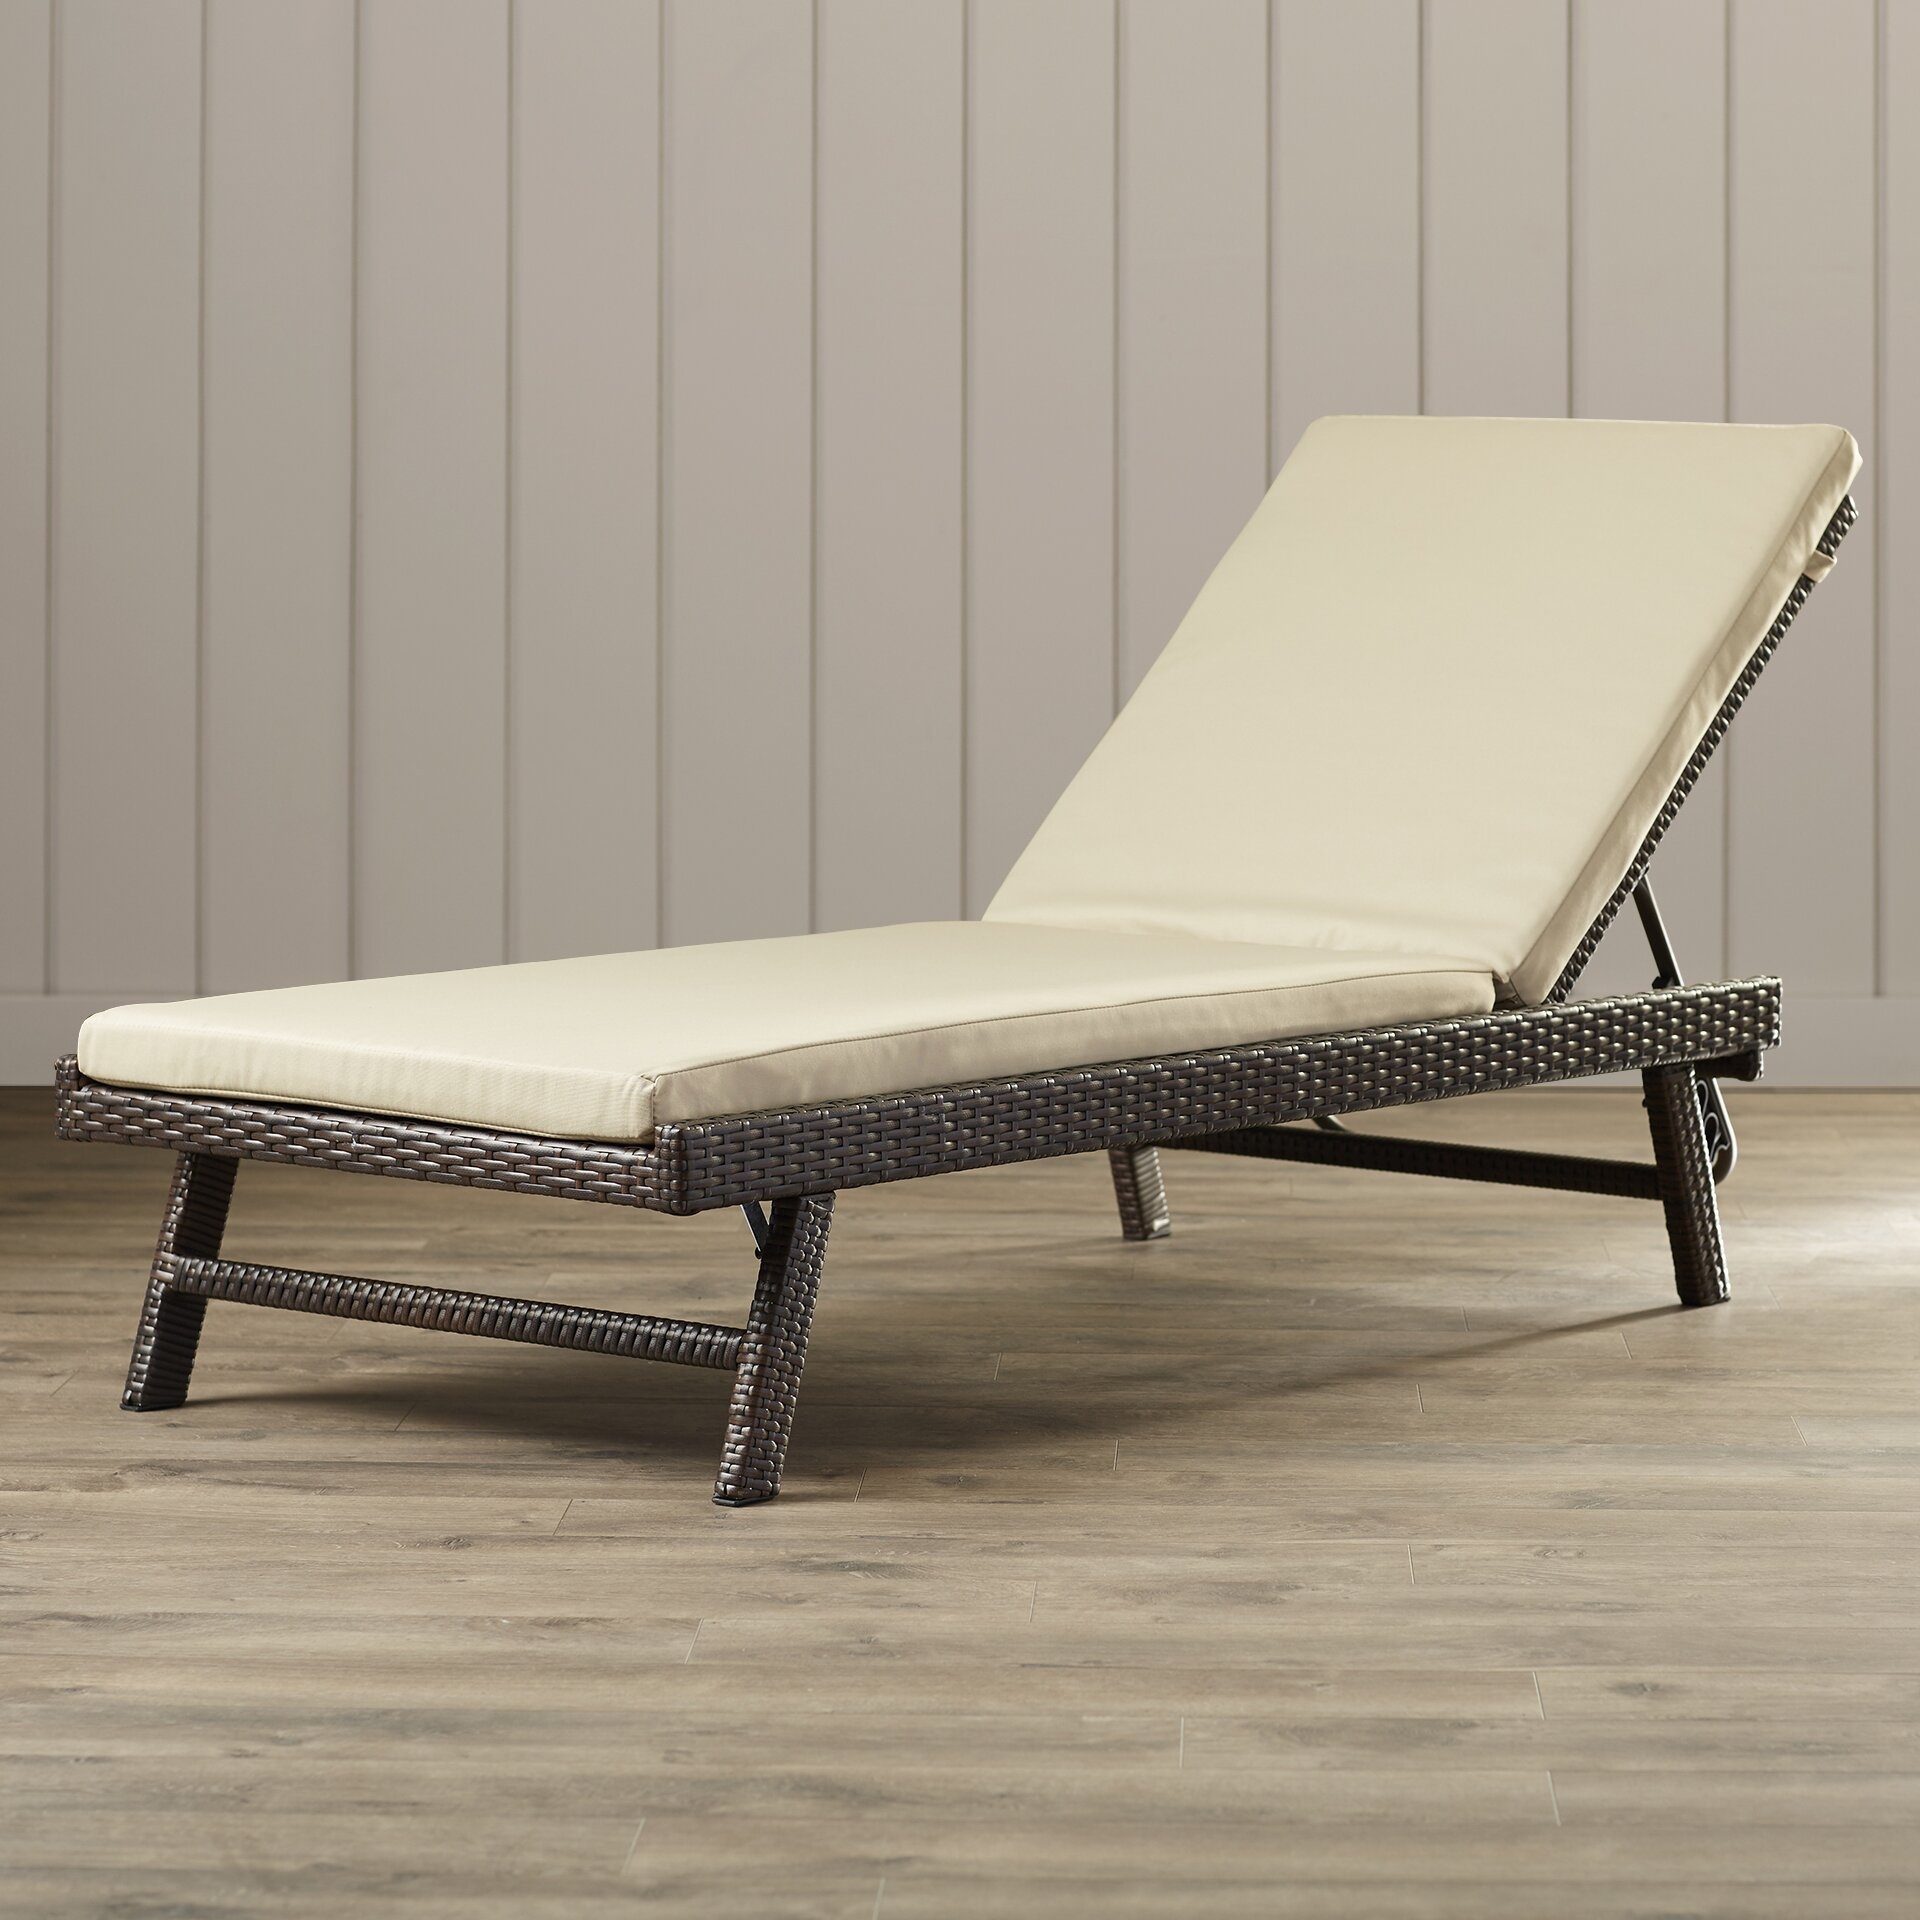 Beachcrest home calypso chaise lounge with cushion for 3 in 1 beach chaise lounge